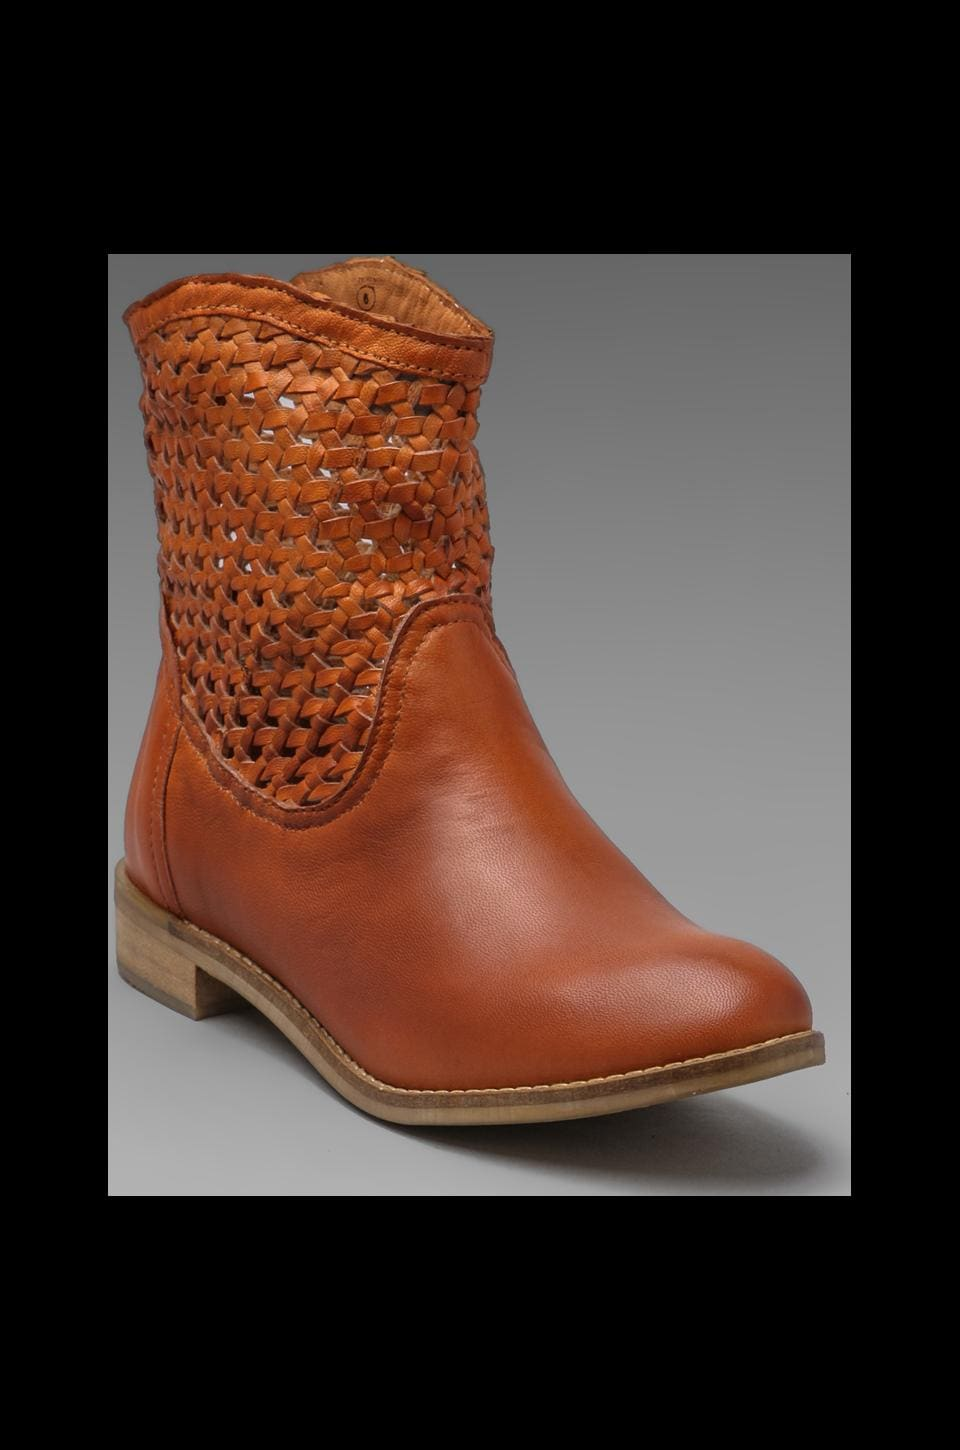 Seychelles Knock at the Door Bootie in Cognac